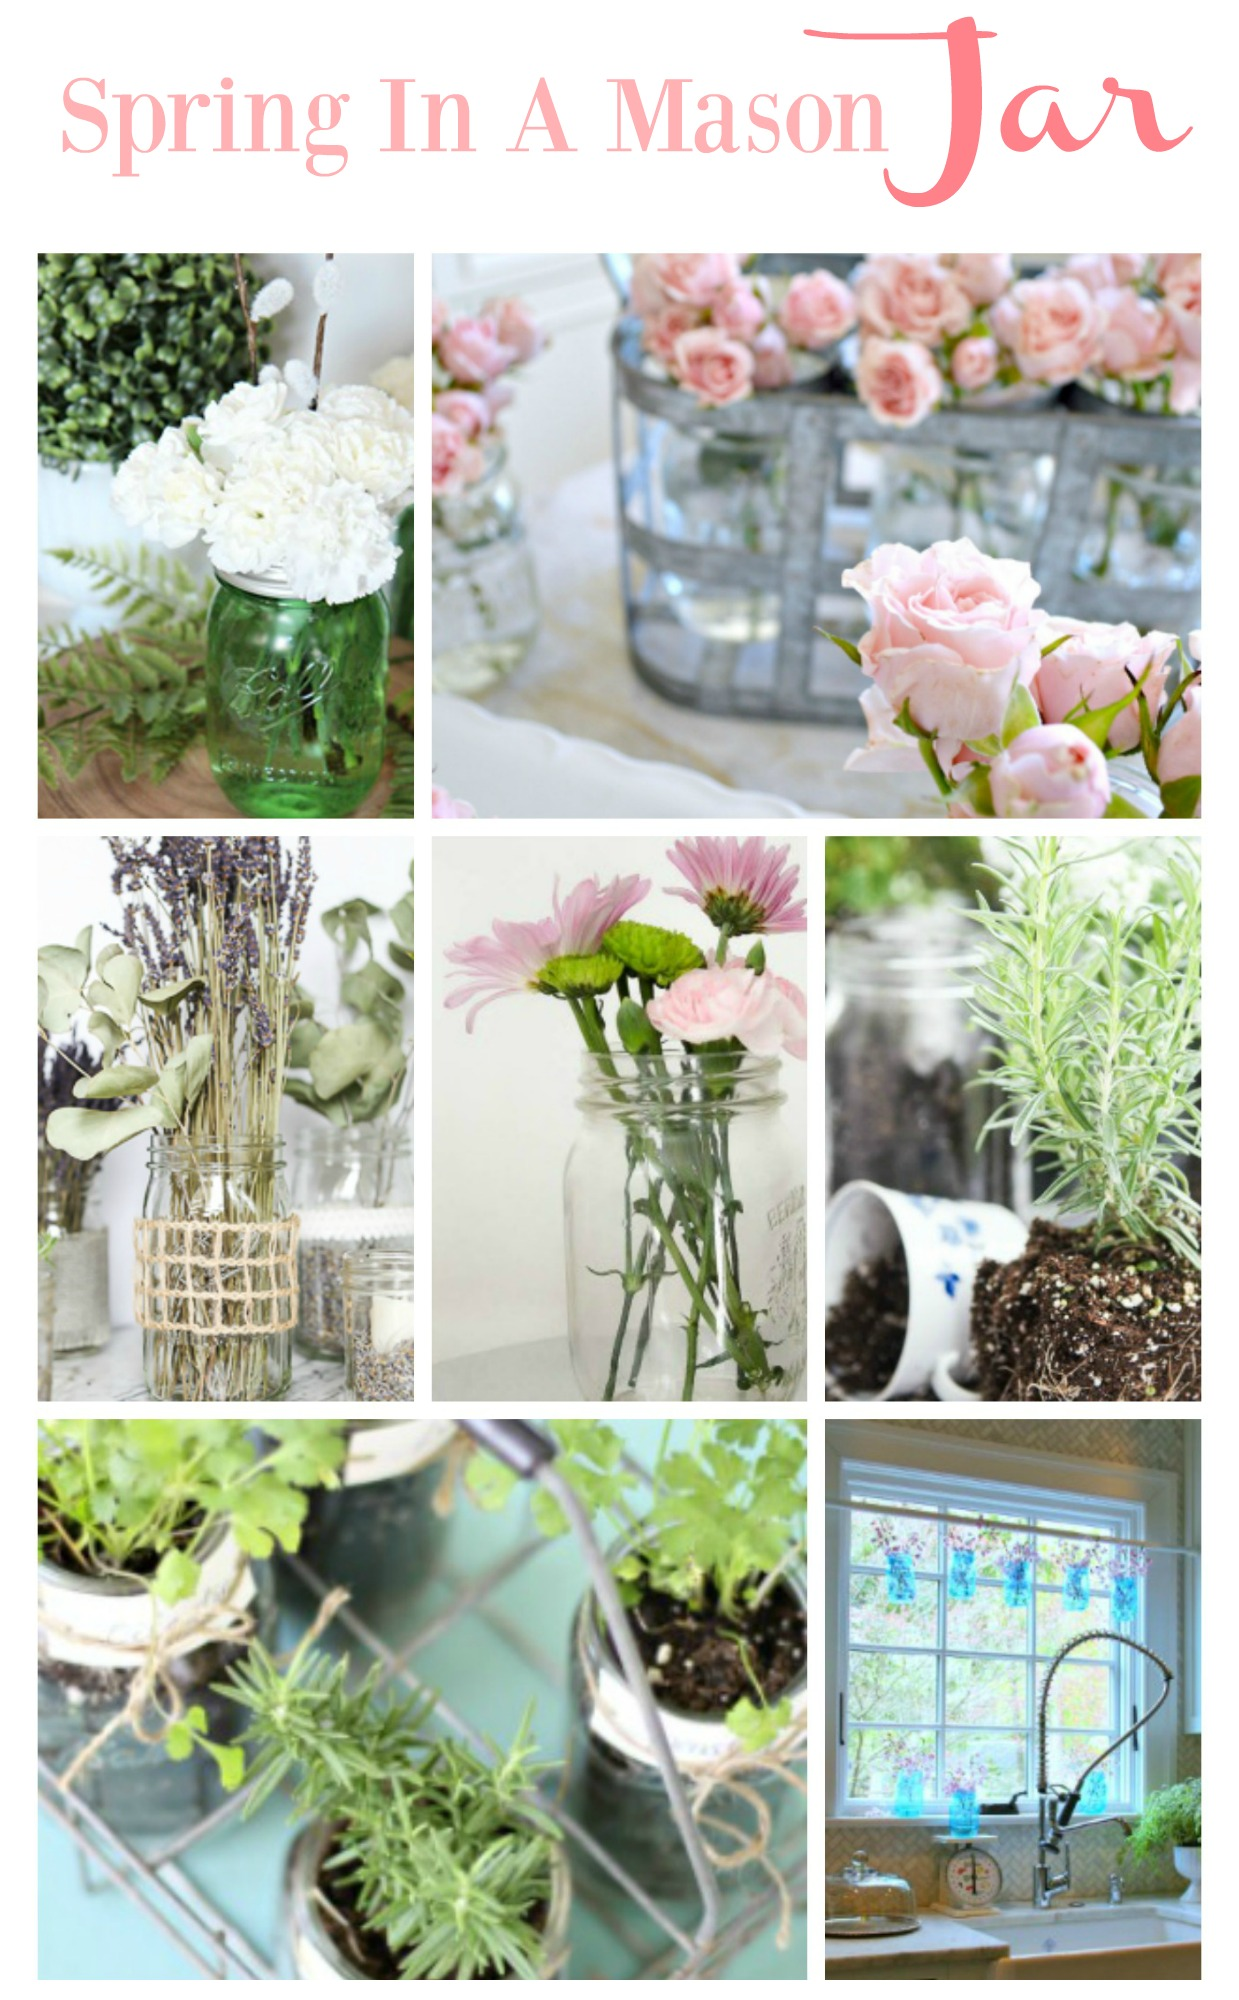 Spring in a mason jar 7 wonderful ideas!